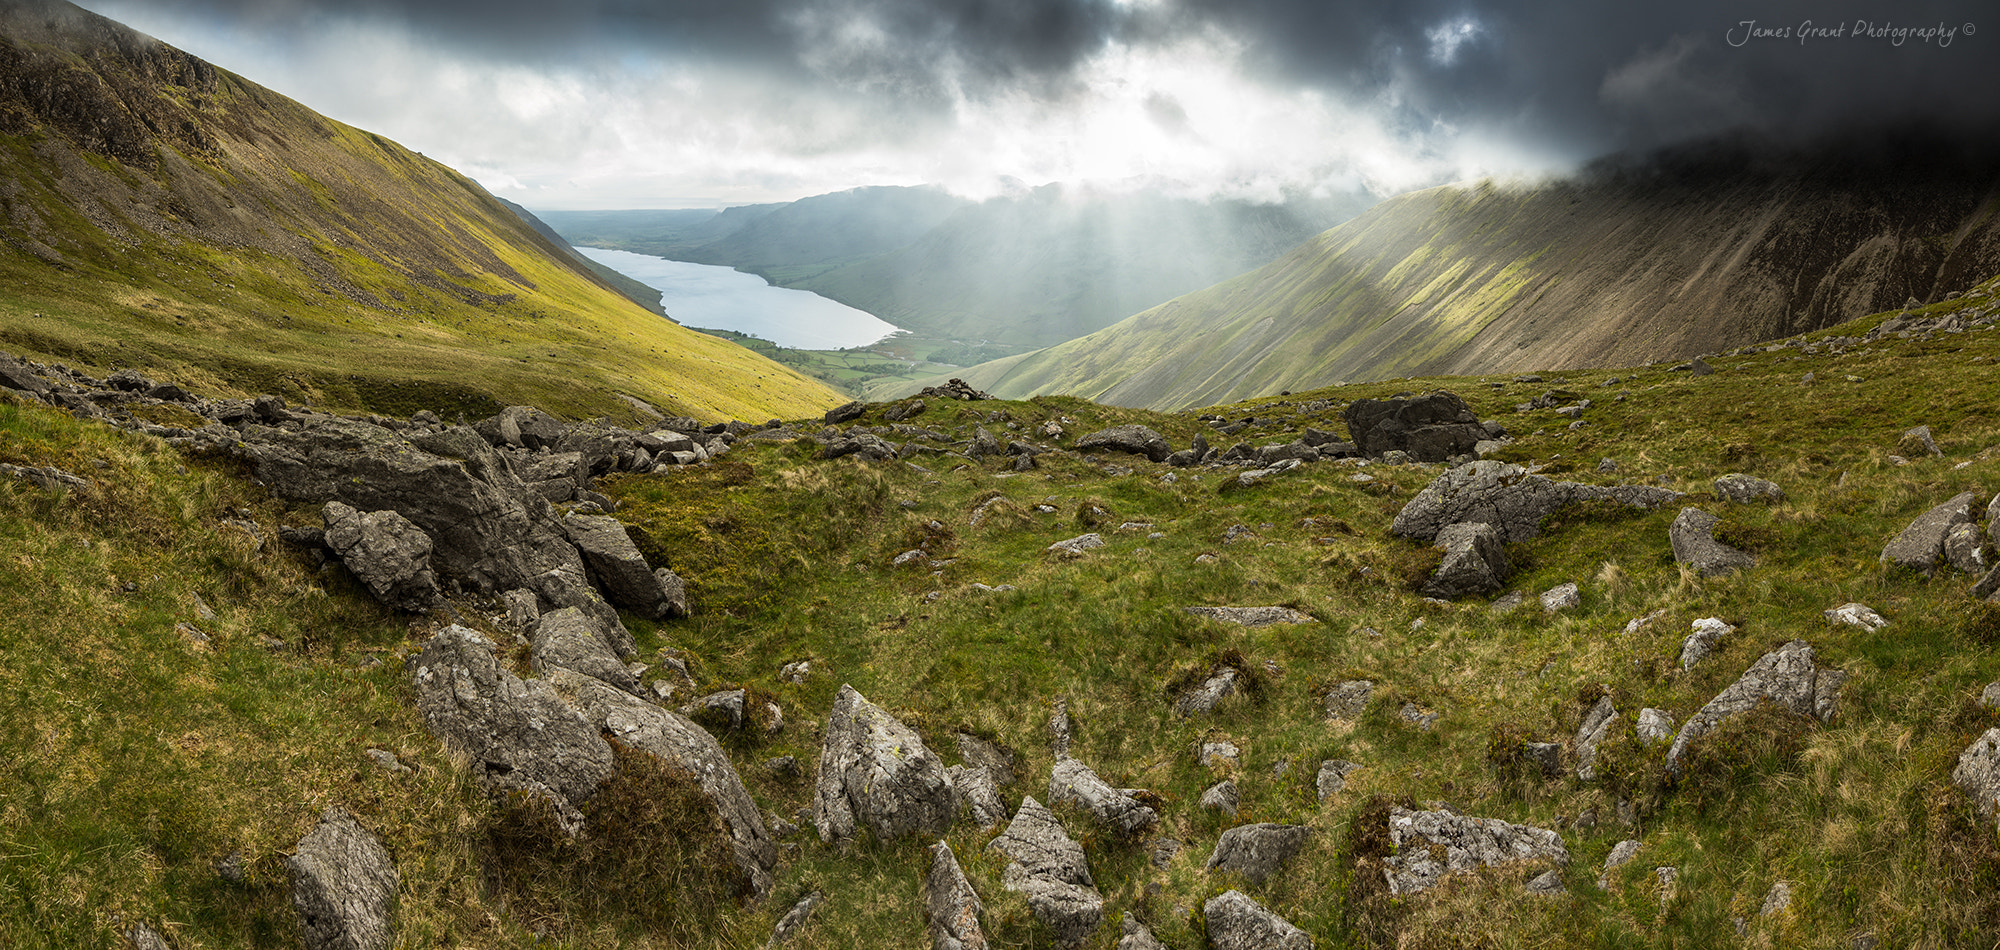 Photograph Wasdale Storms by James Grant on 500px